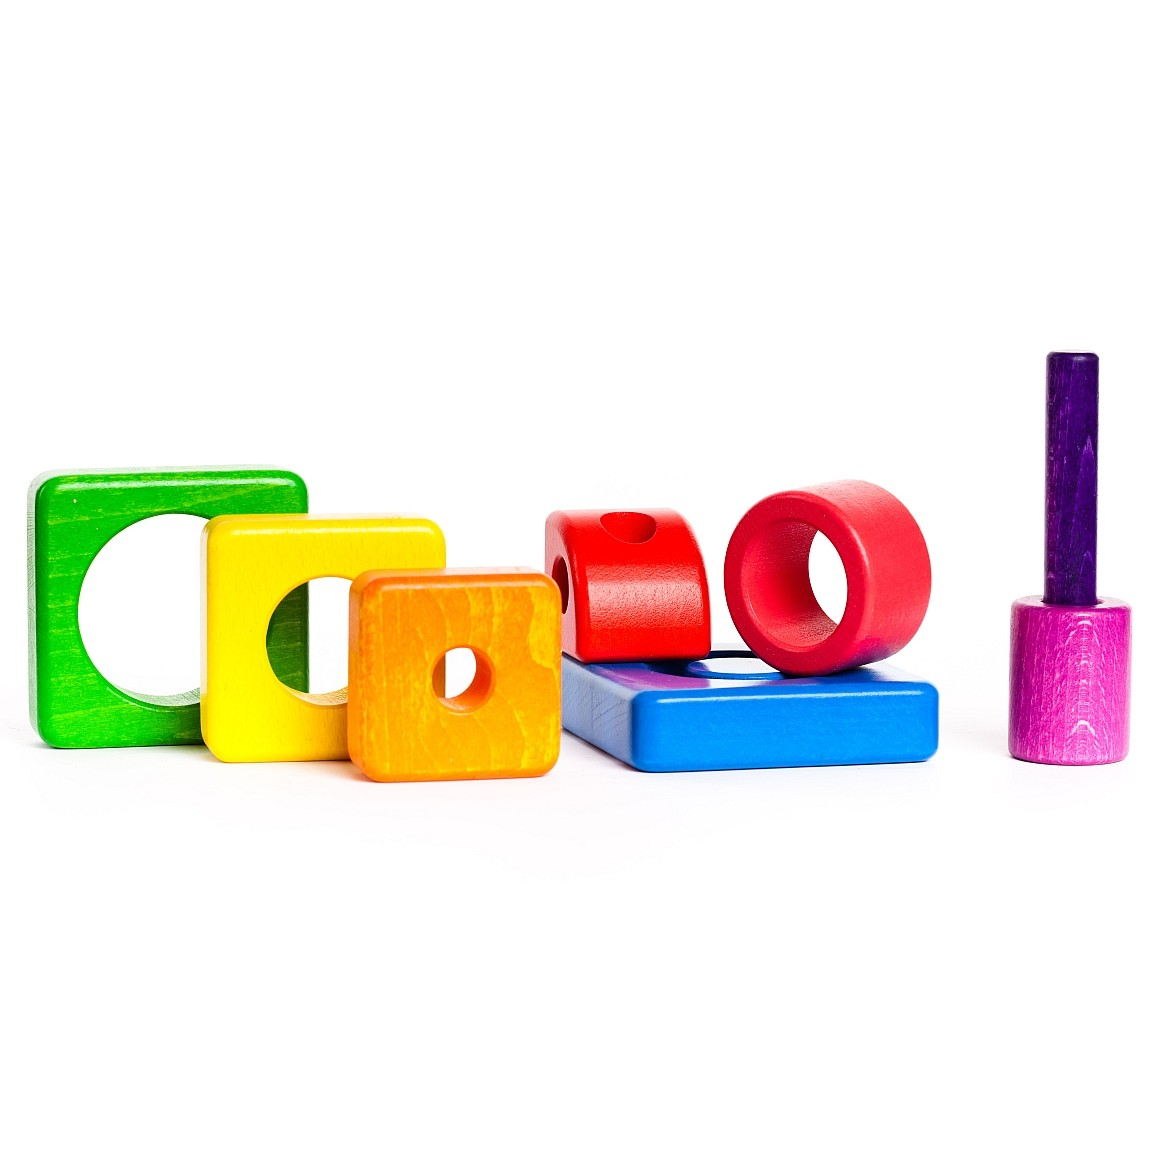 Stacking Toy Puzzles : Bajo puzzle stacker tower